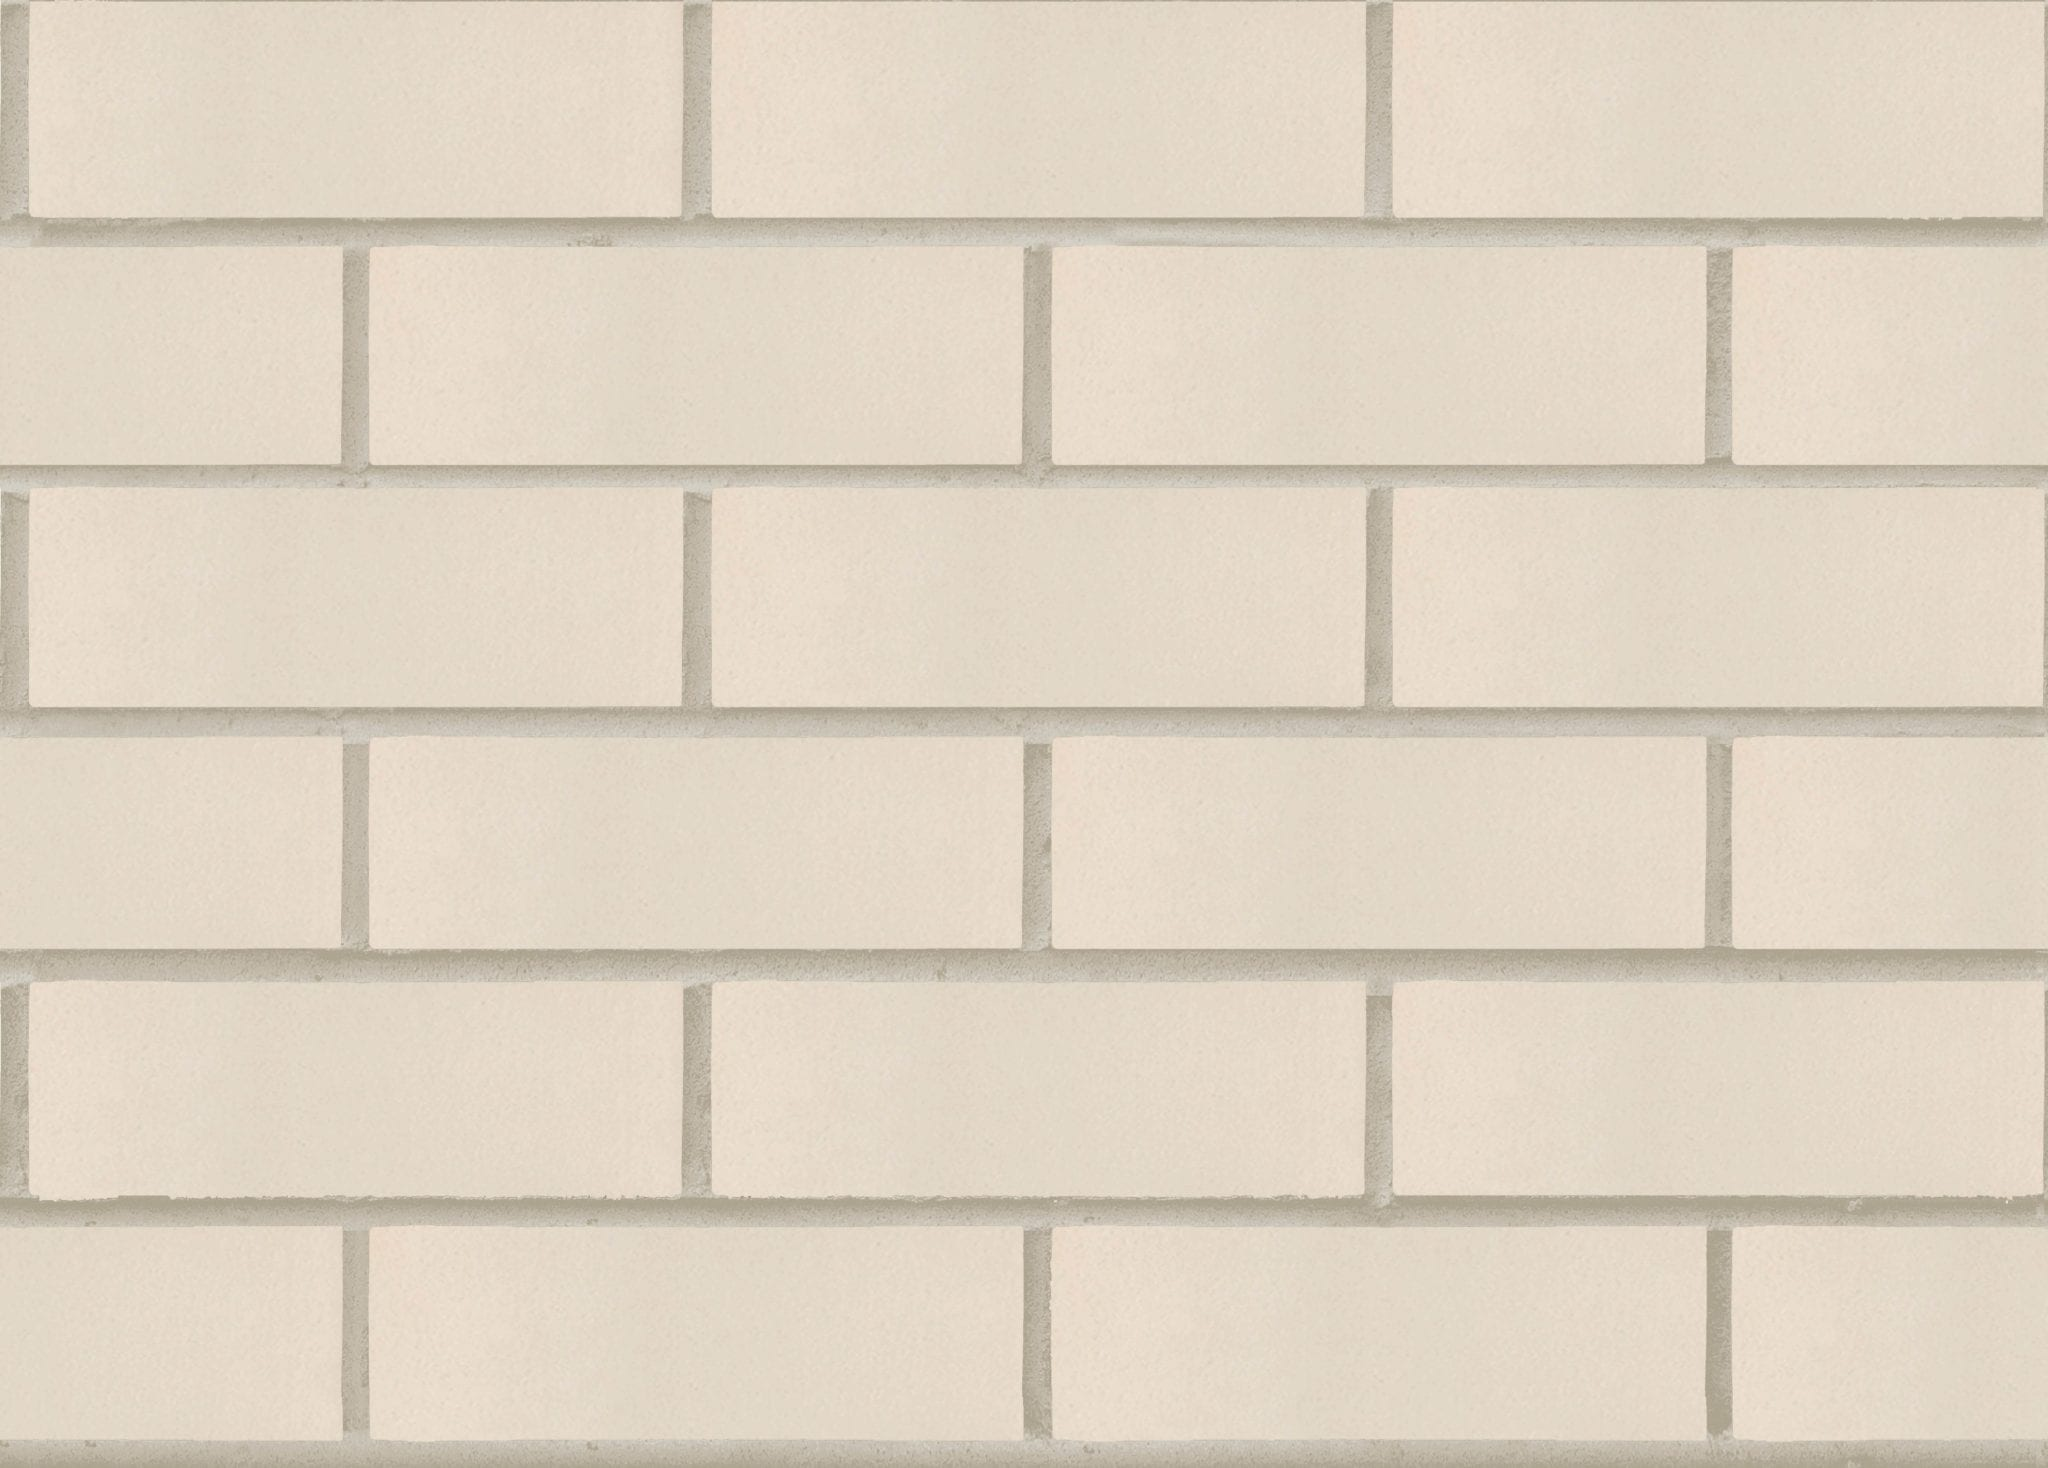 UltraSmoothTempo230x76-110-240 - NSW Bricks